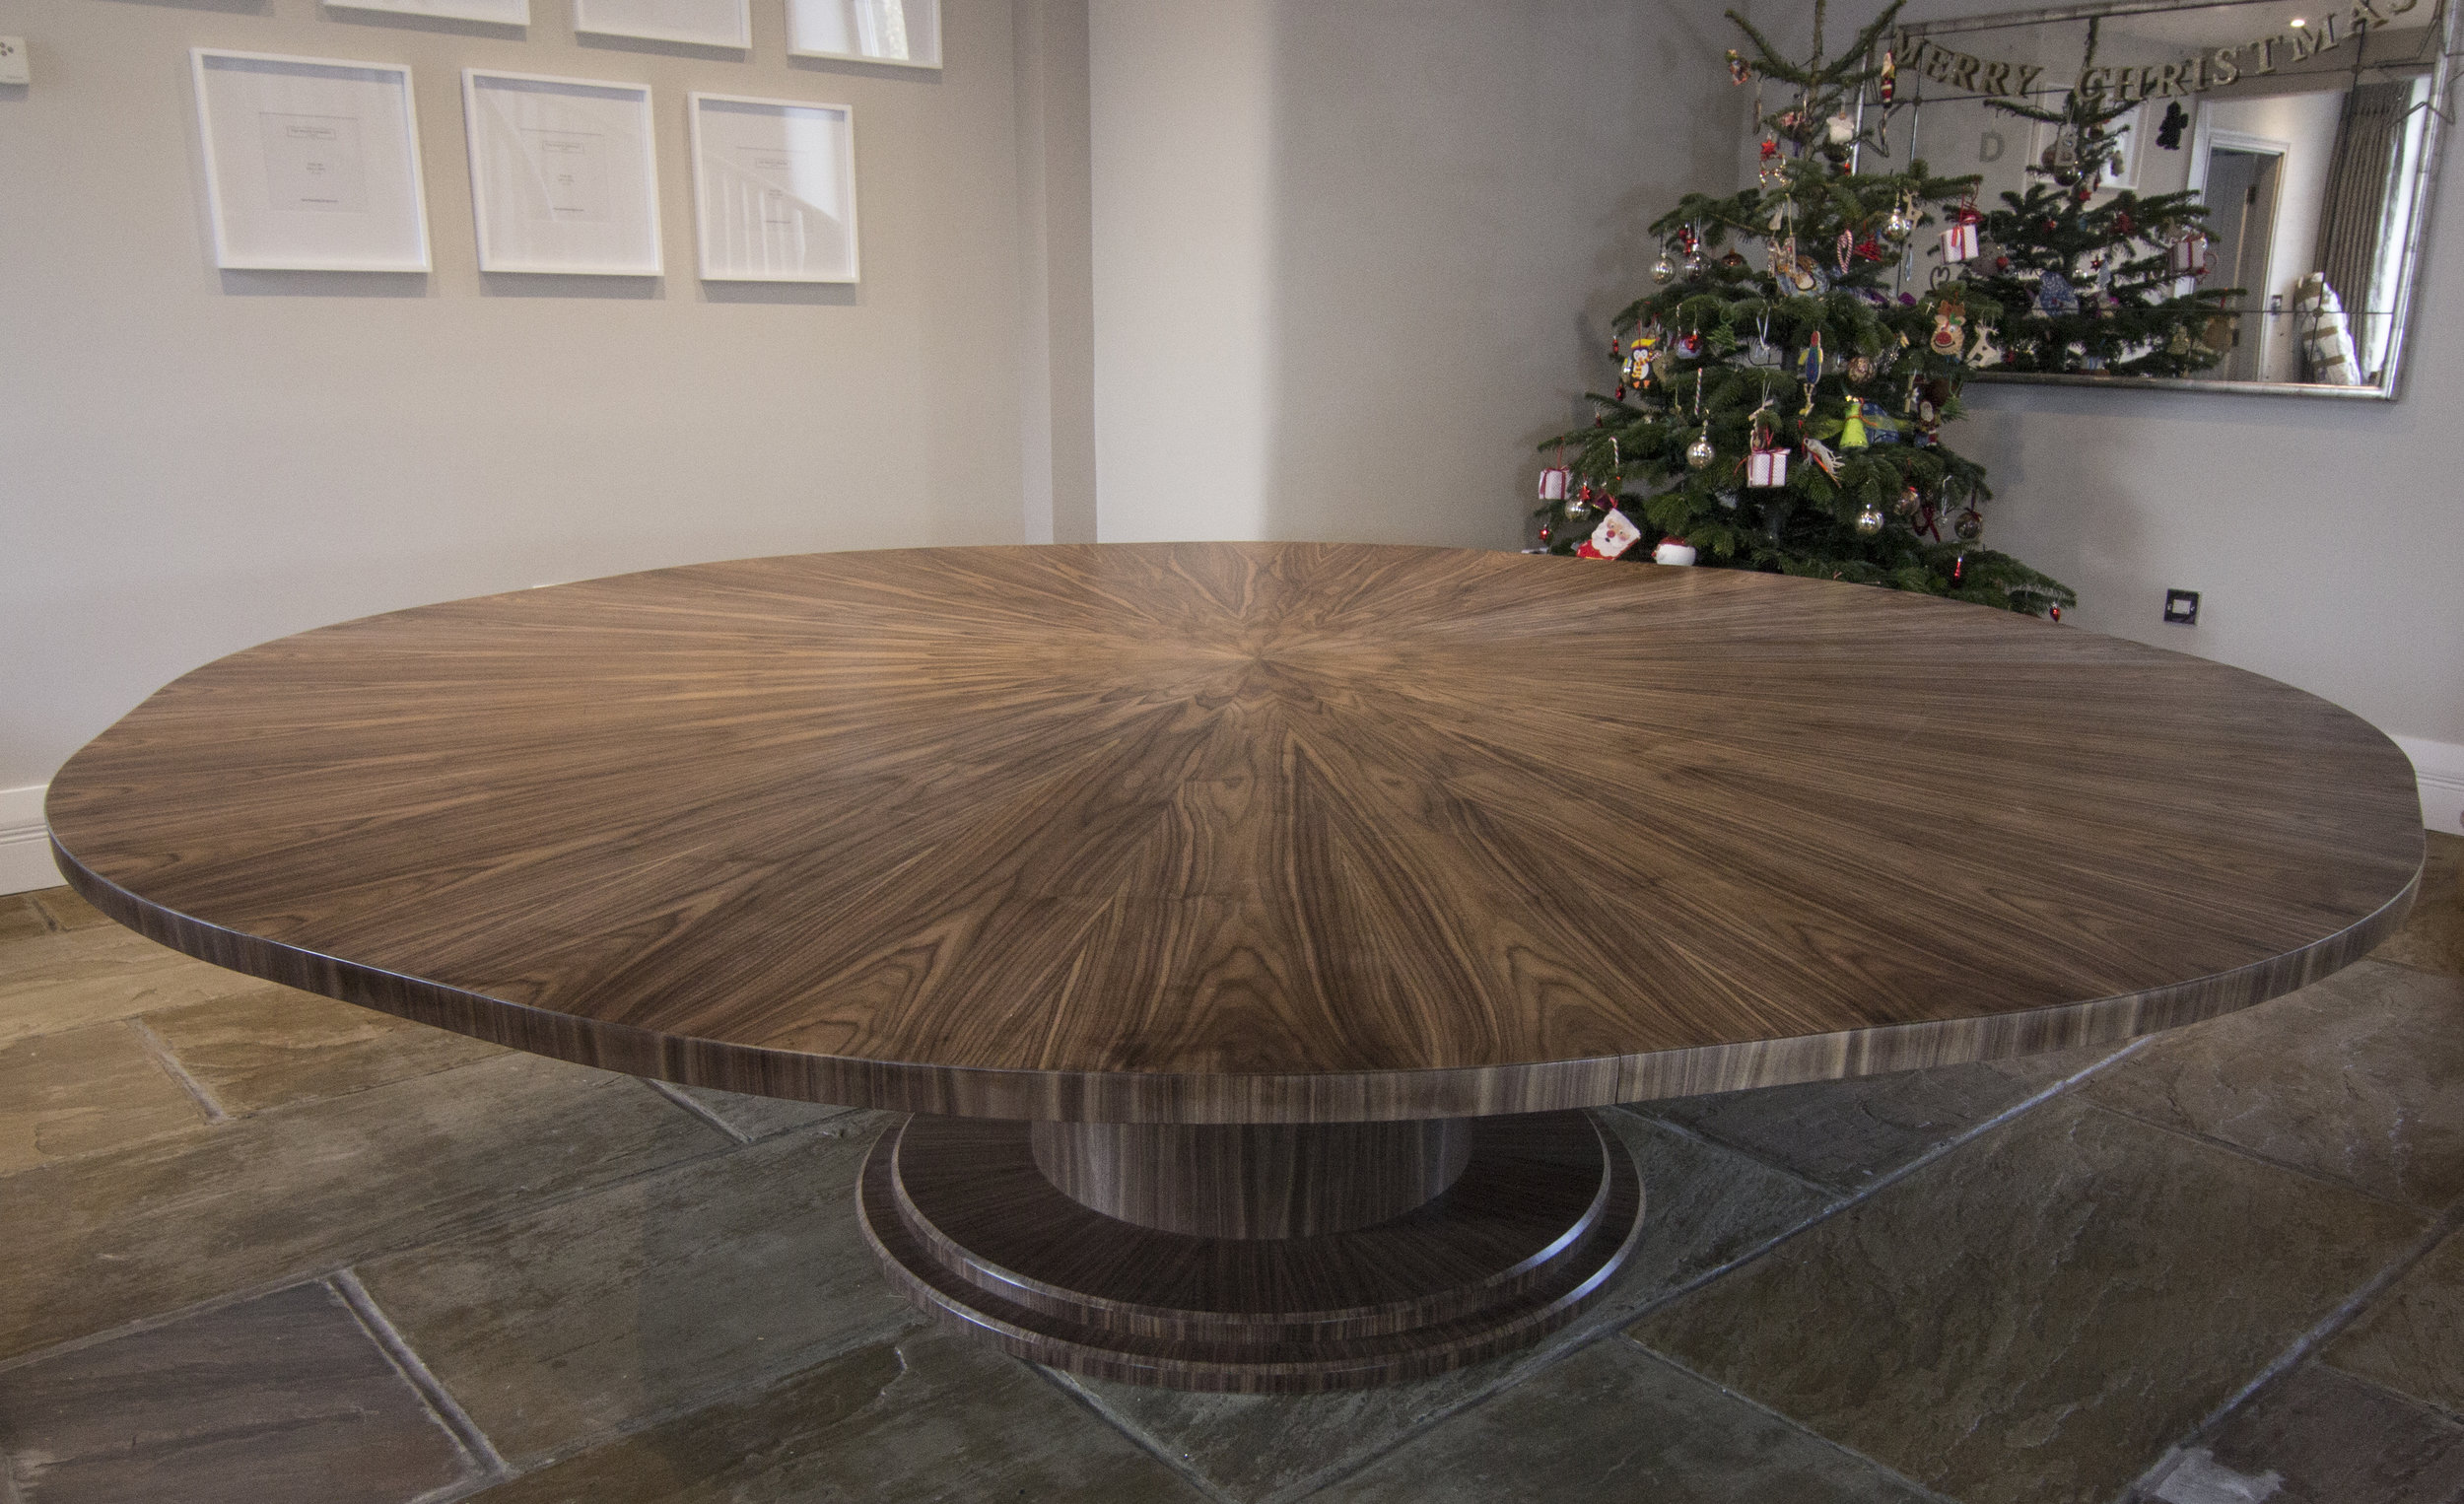 Walnut table 2000 - 2700mm 04.jpg